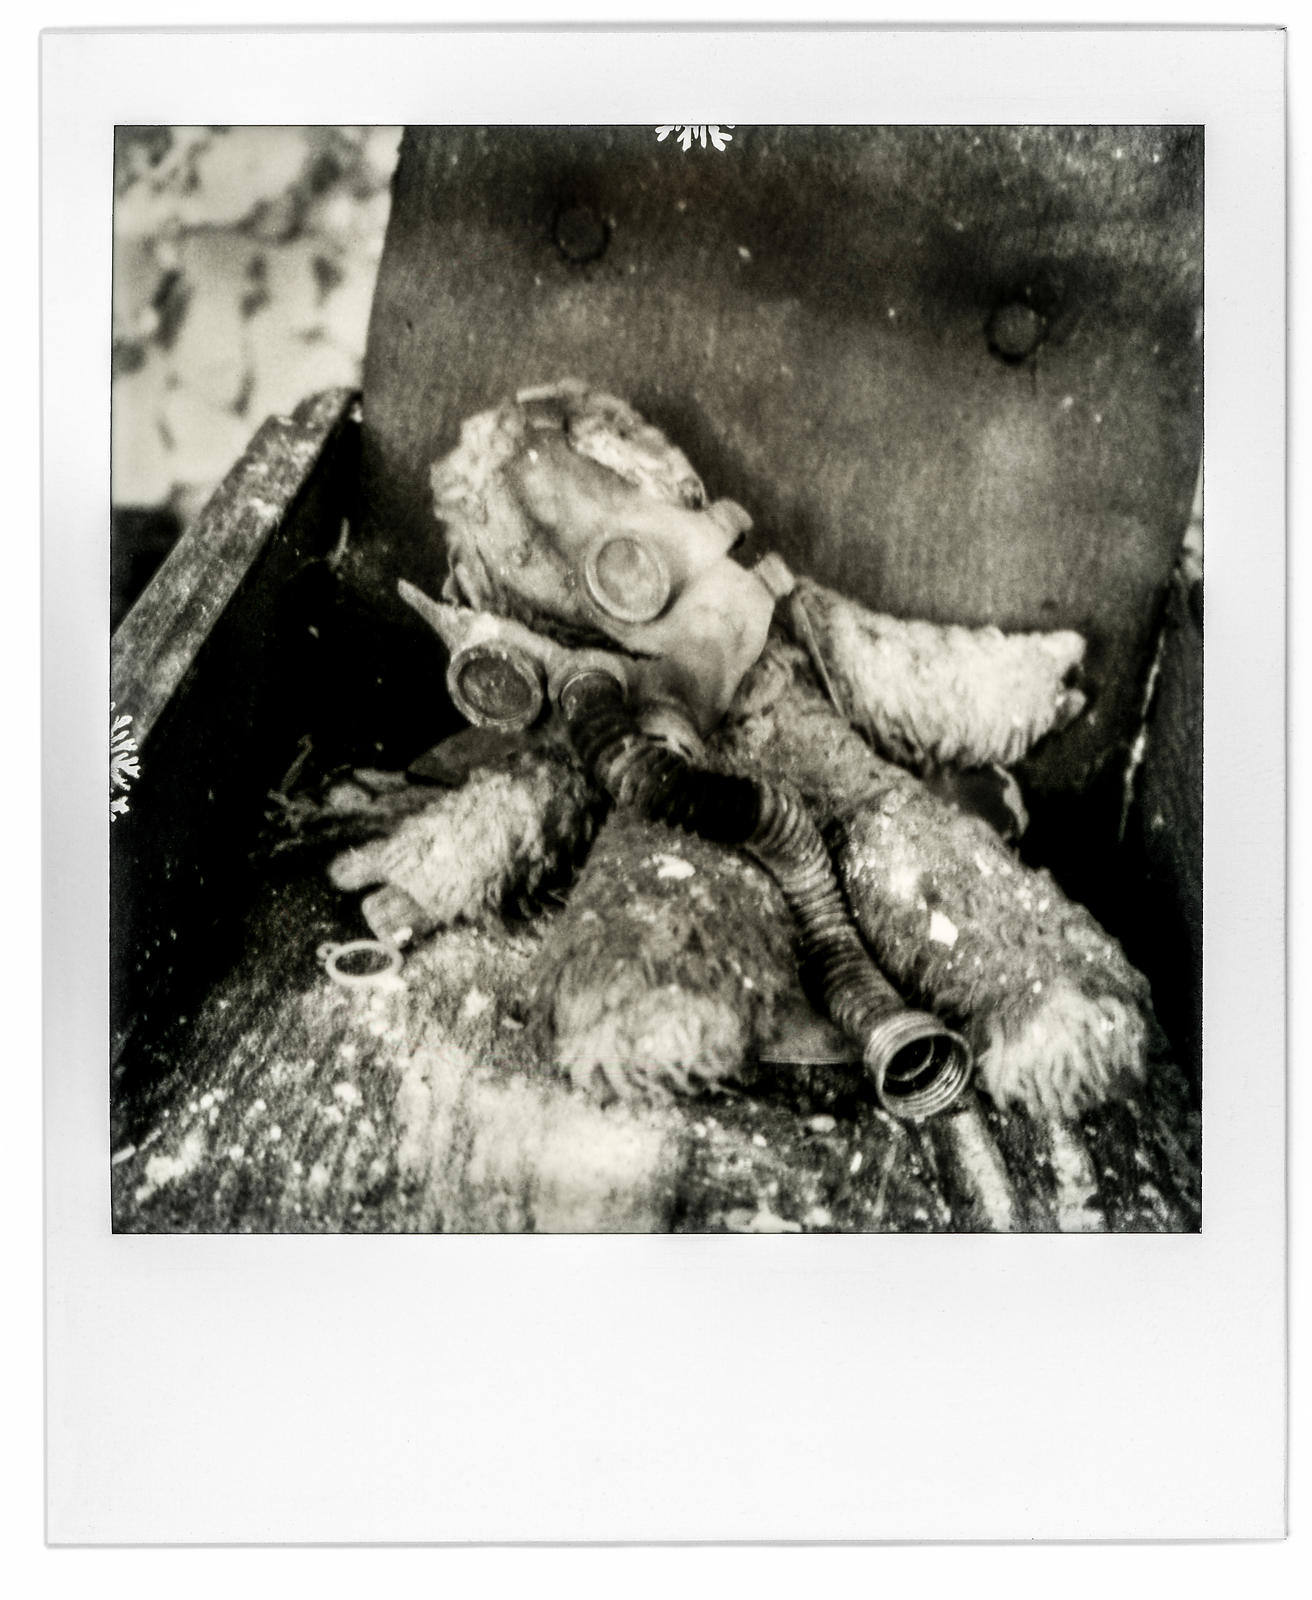 photo-polaroid-tchernobyl-chernobyl-3